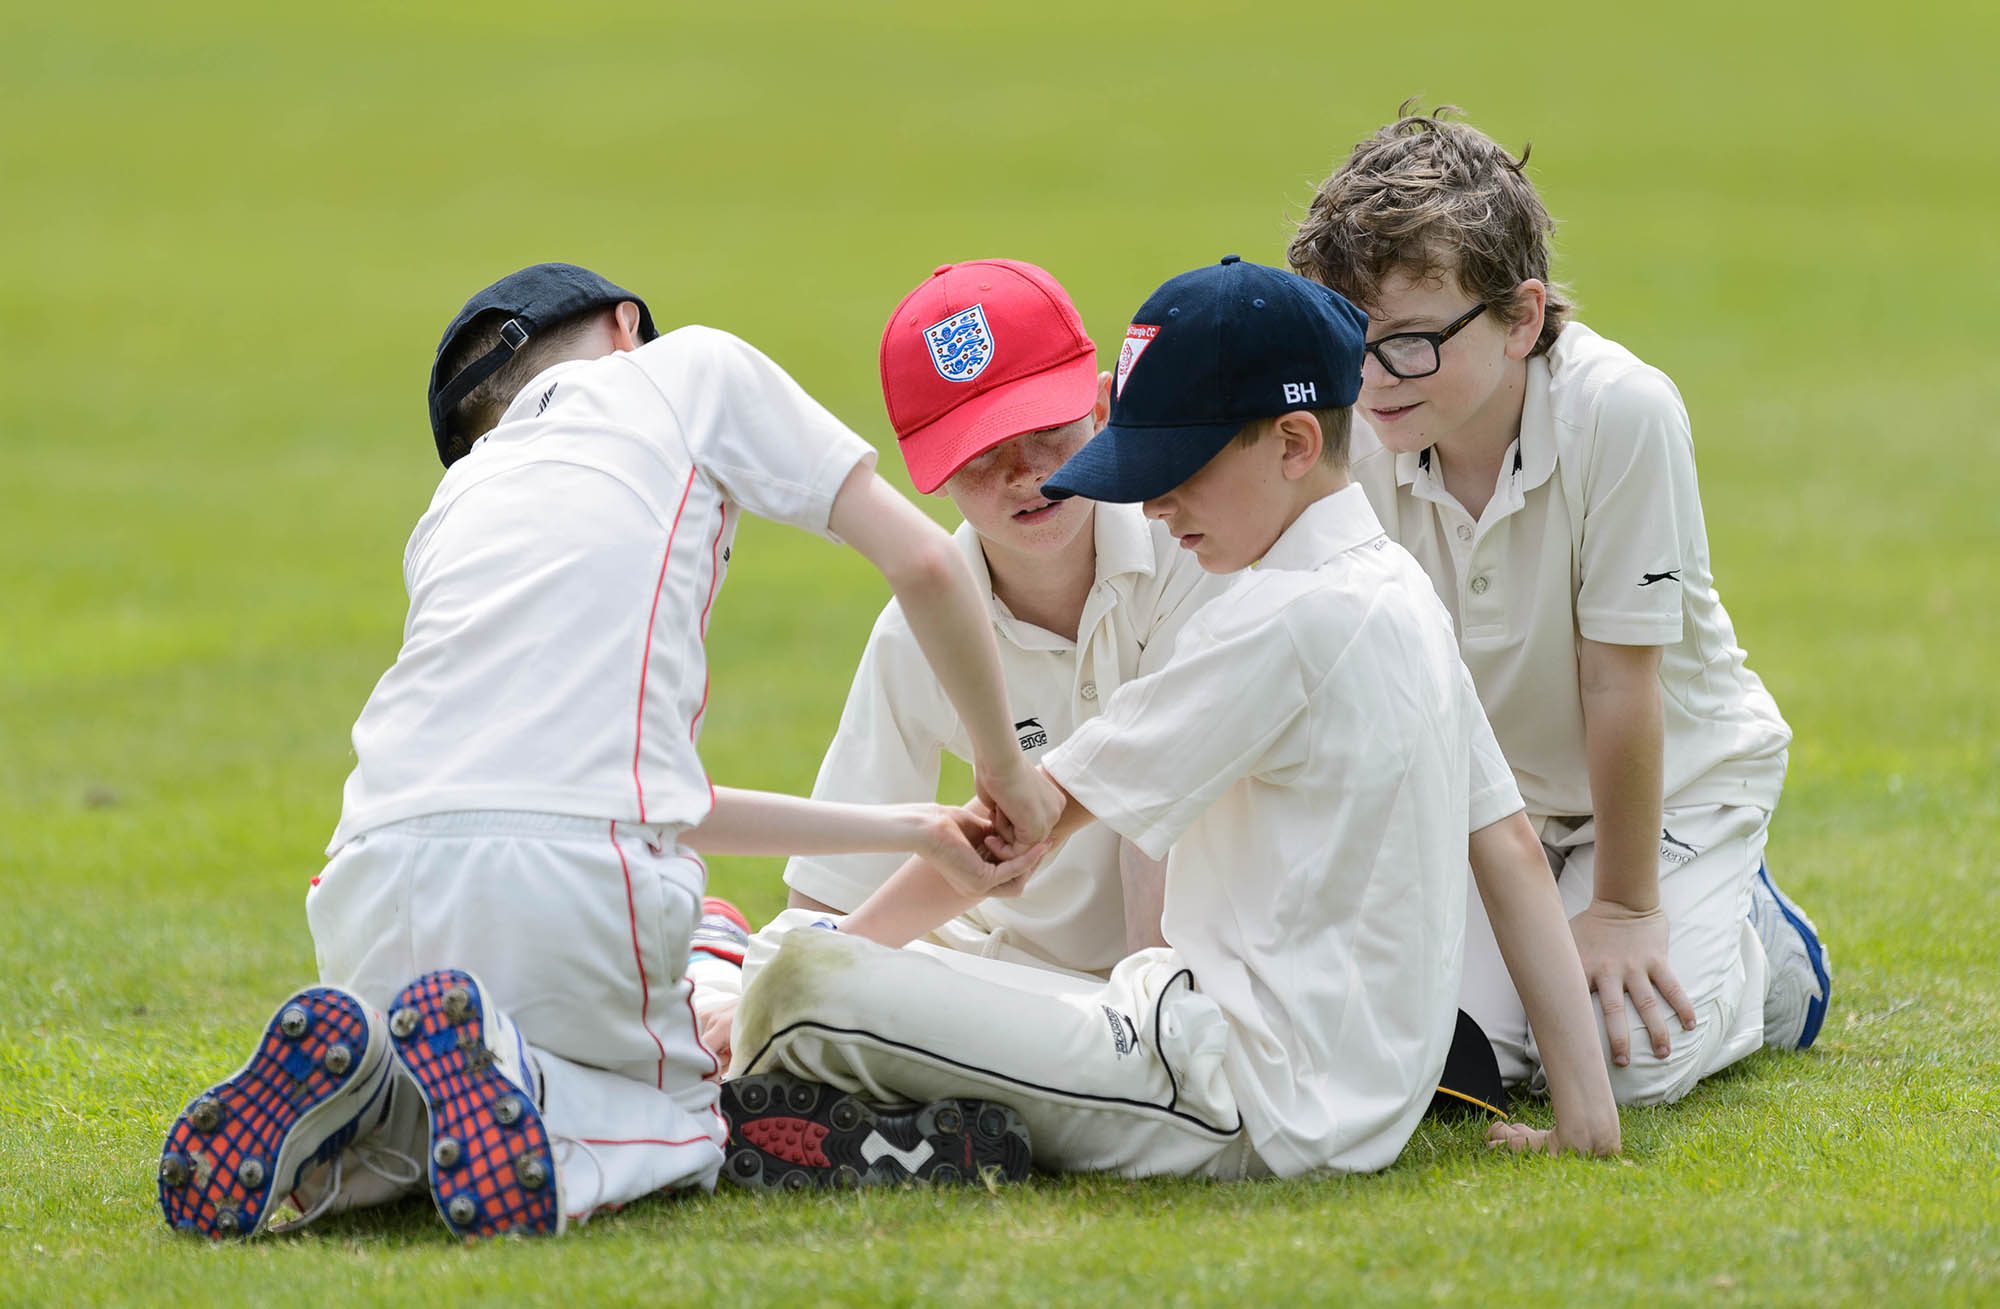 four boys in cricket whites sat on grass